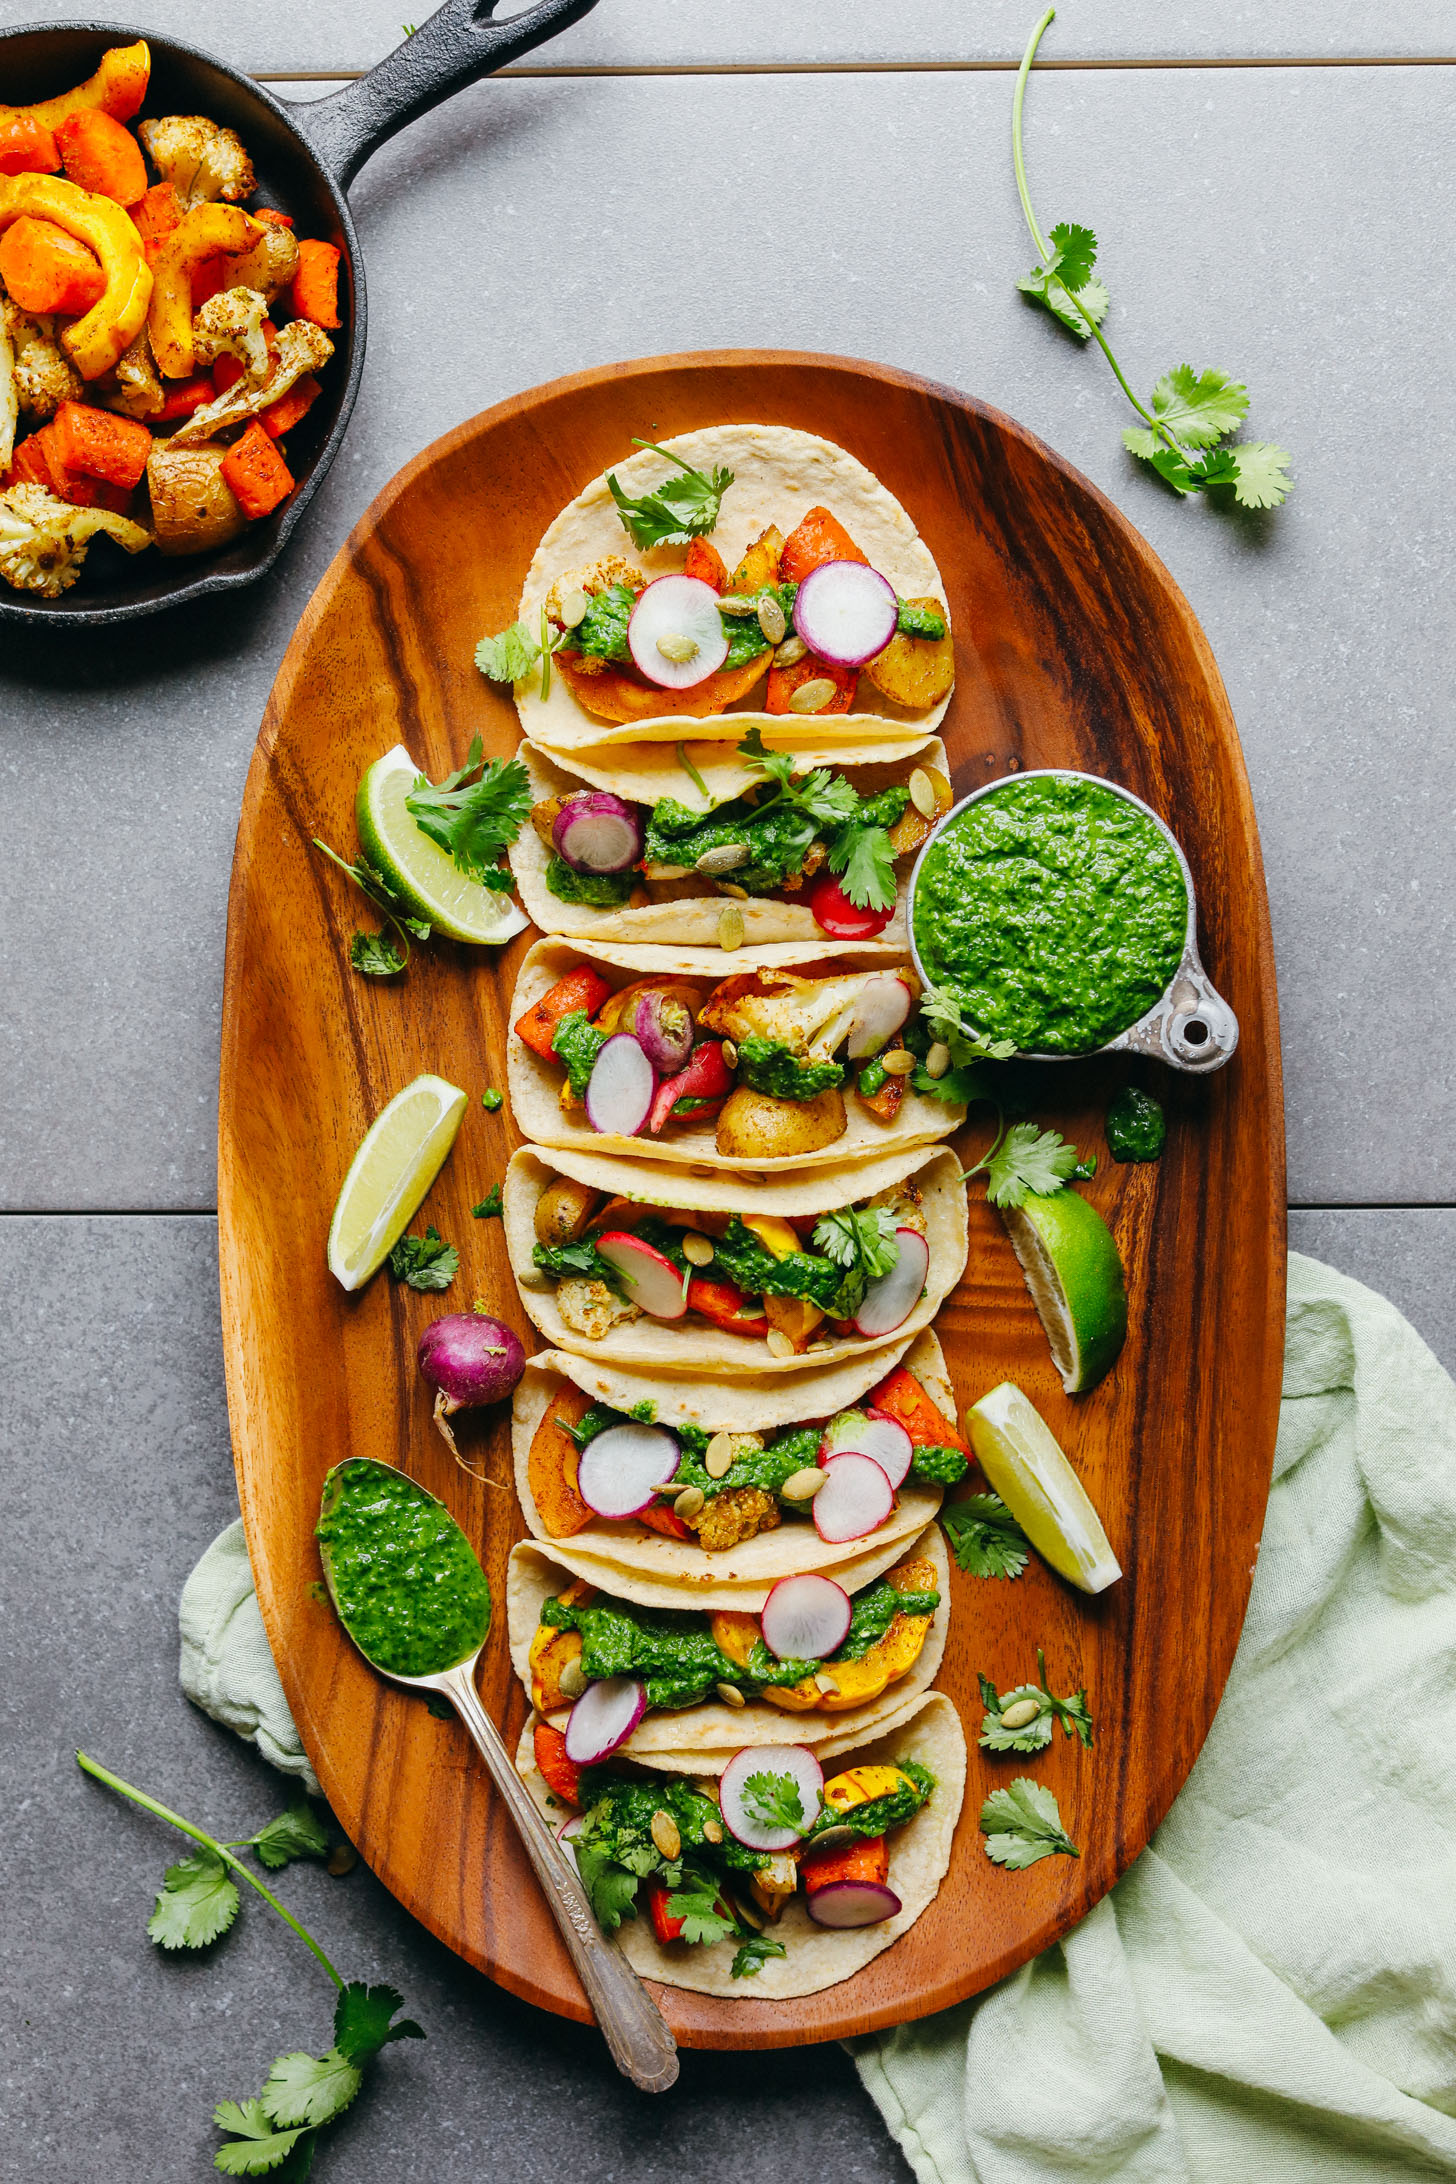 30-Minute Roasted Vegetable Tacos with Chimichurri! BIG flavor, satisfying, HEALTHY! #vegan #glutenfree #plantbased #tacos #chimichurri #cauliflower #minimalistbaker #recipe